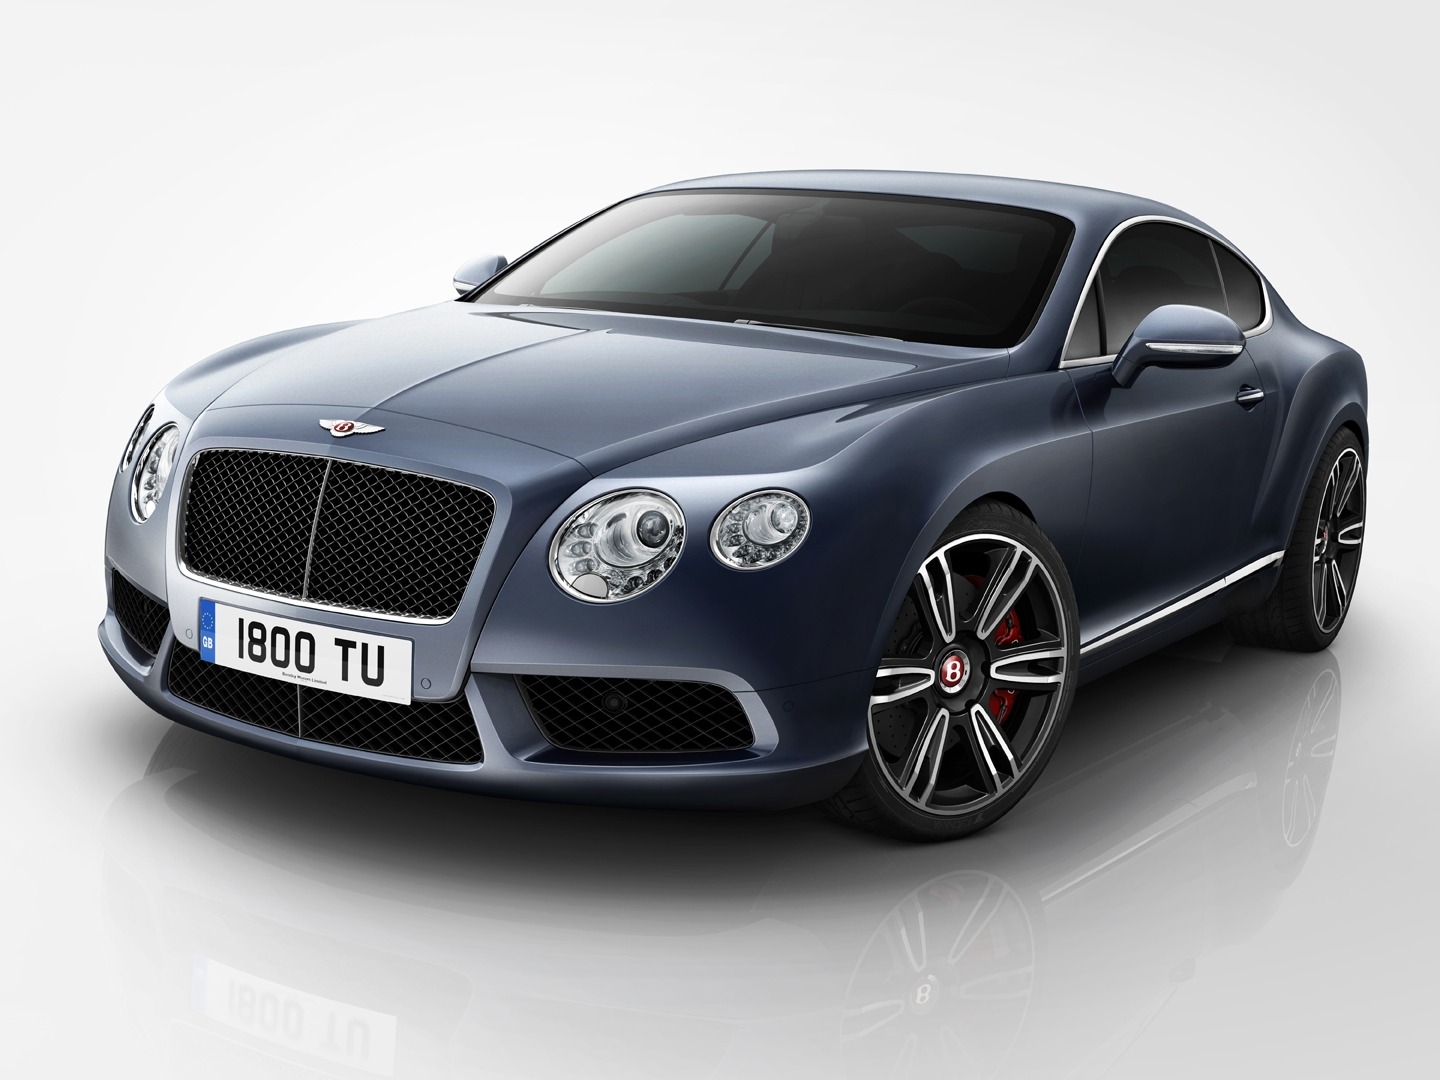 2012 Bentley Continental GT V8 Engine Wallpaper For Free Download